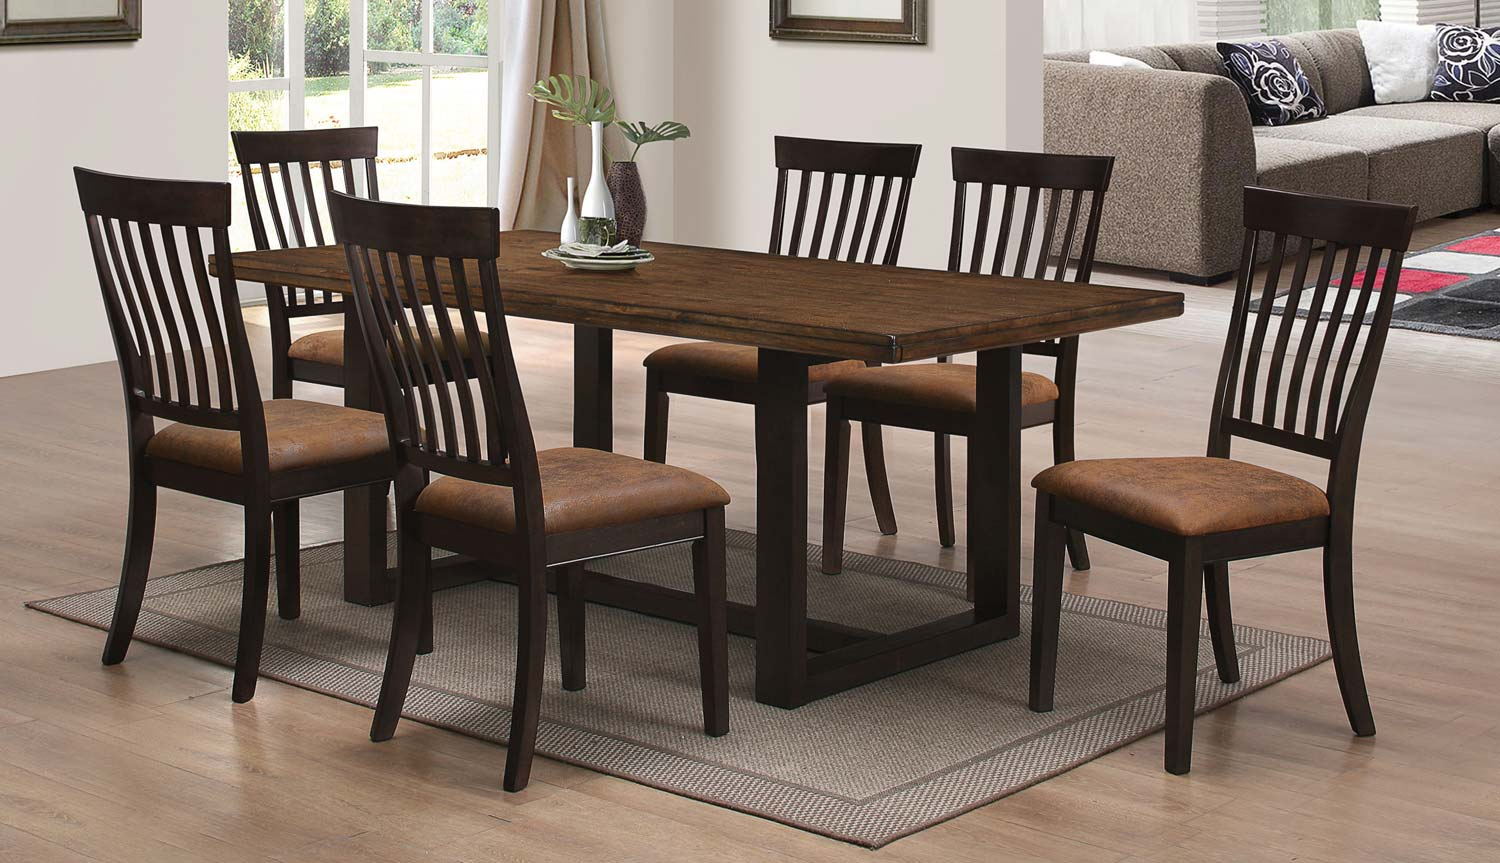 Coaster Wood River Dining set - Two tone rustic Amber & Charcoal